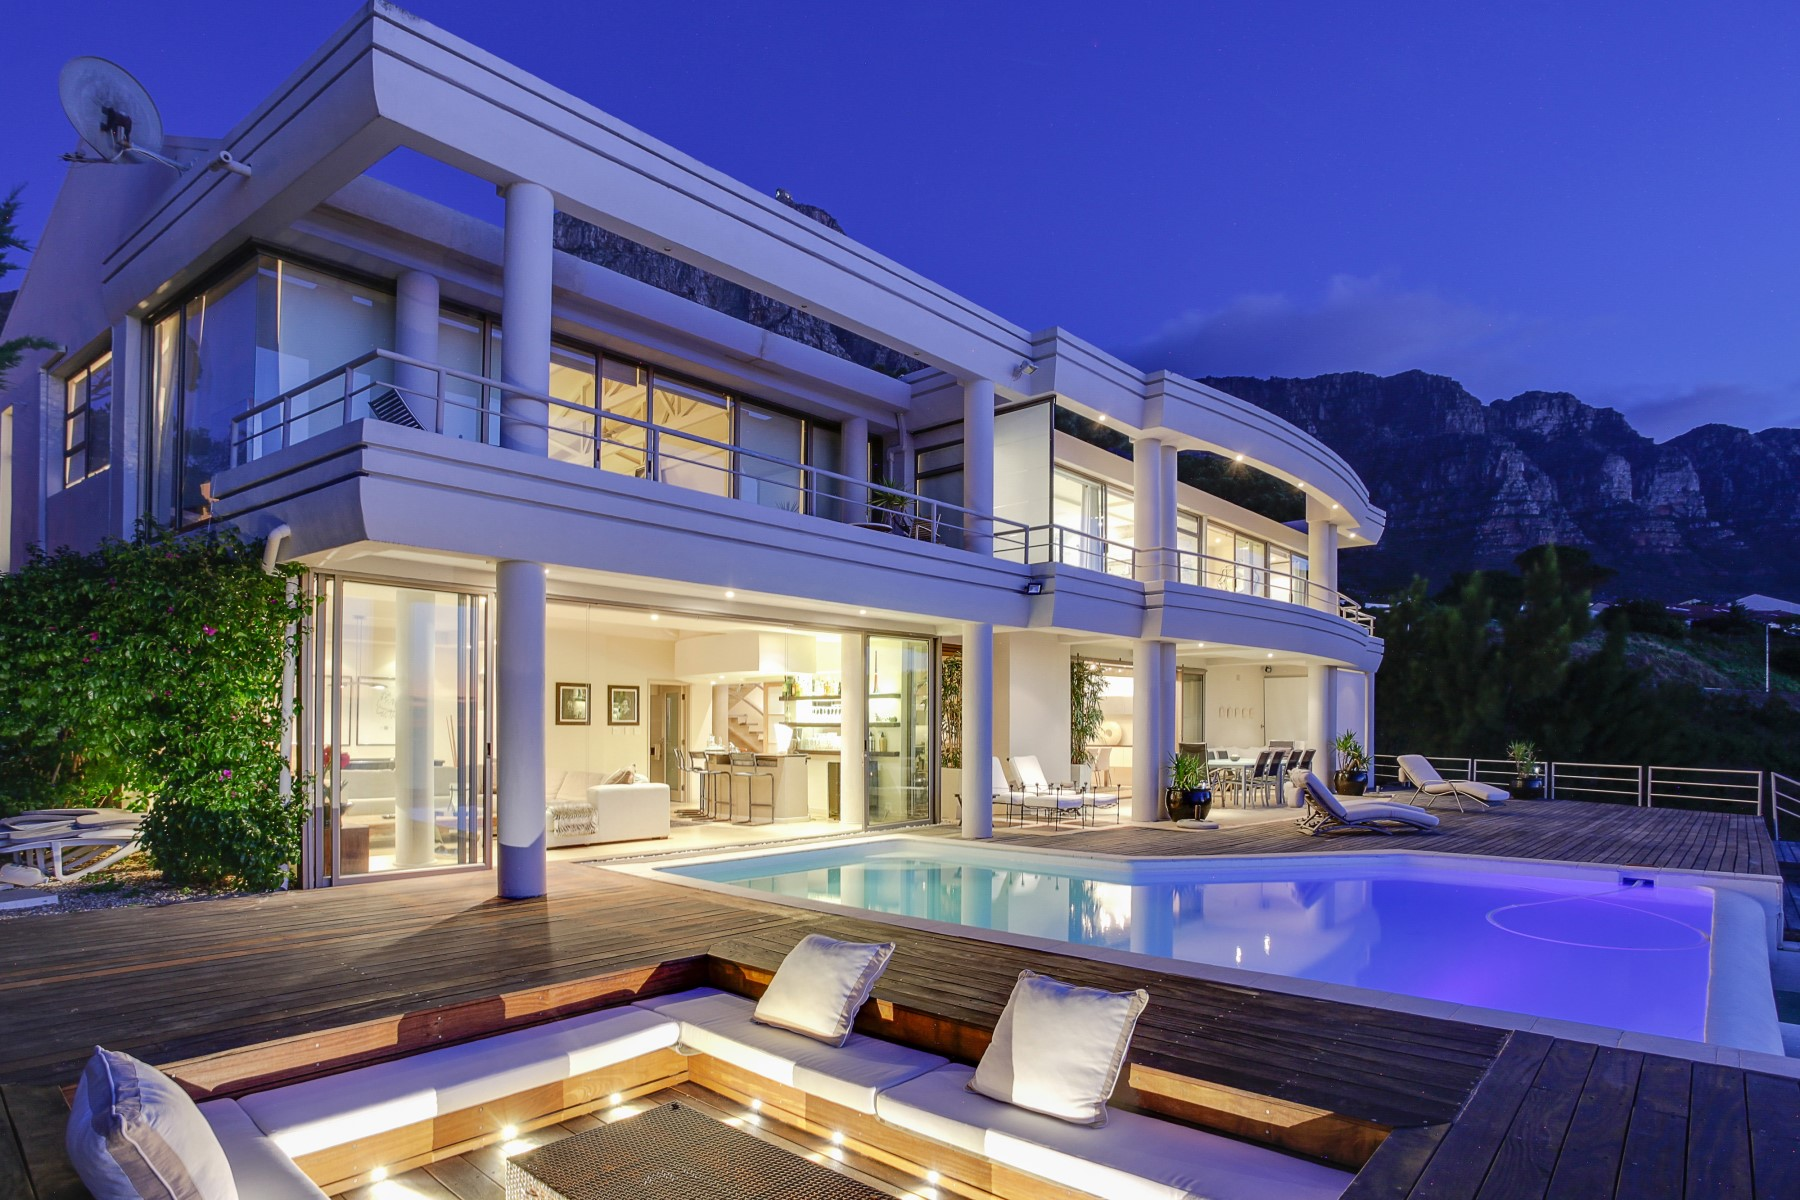 Property For Sale at A Landmark in Camps Bay! Glamorous Hollywood—style villa